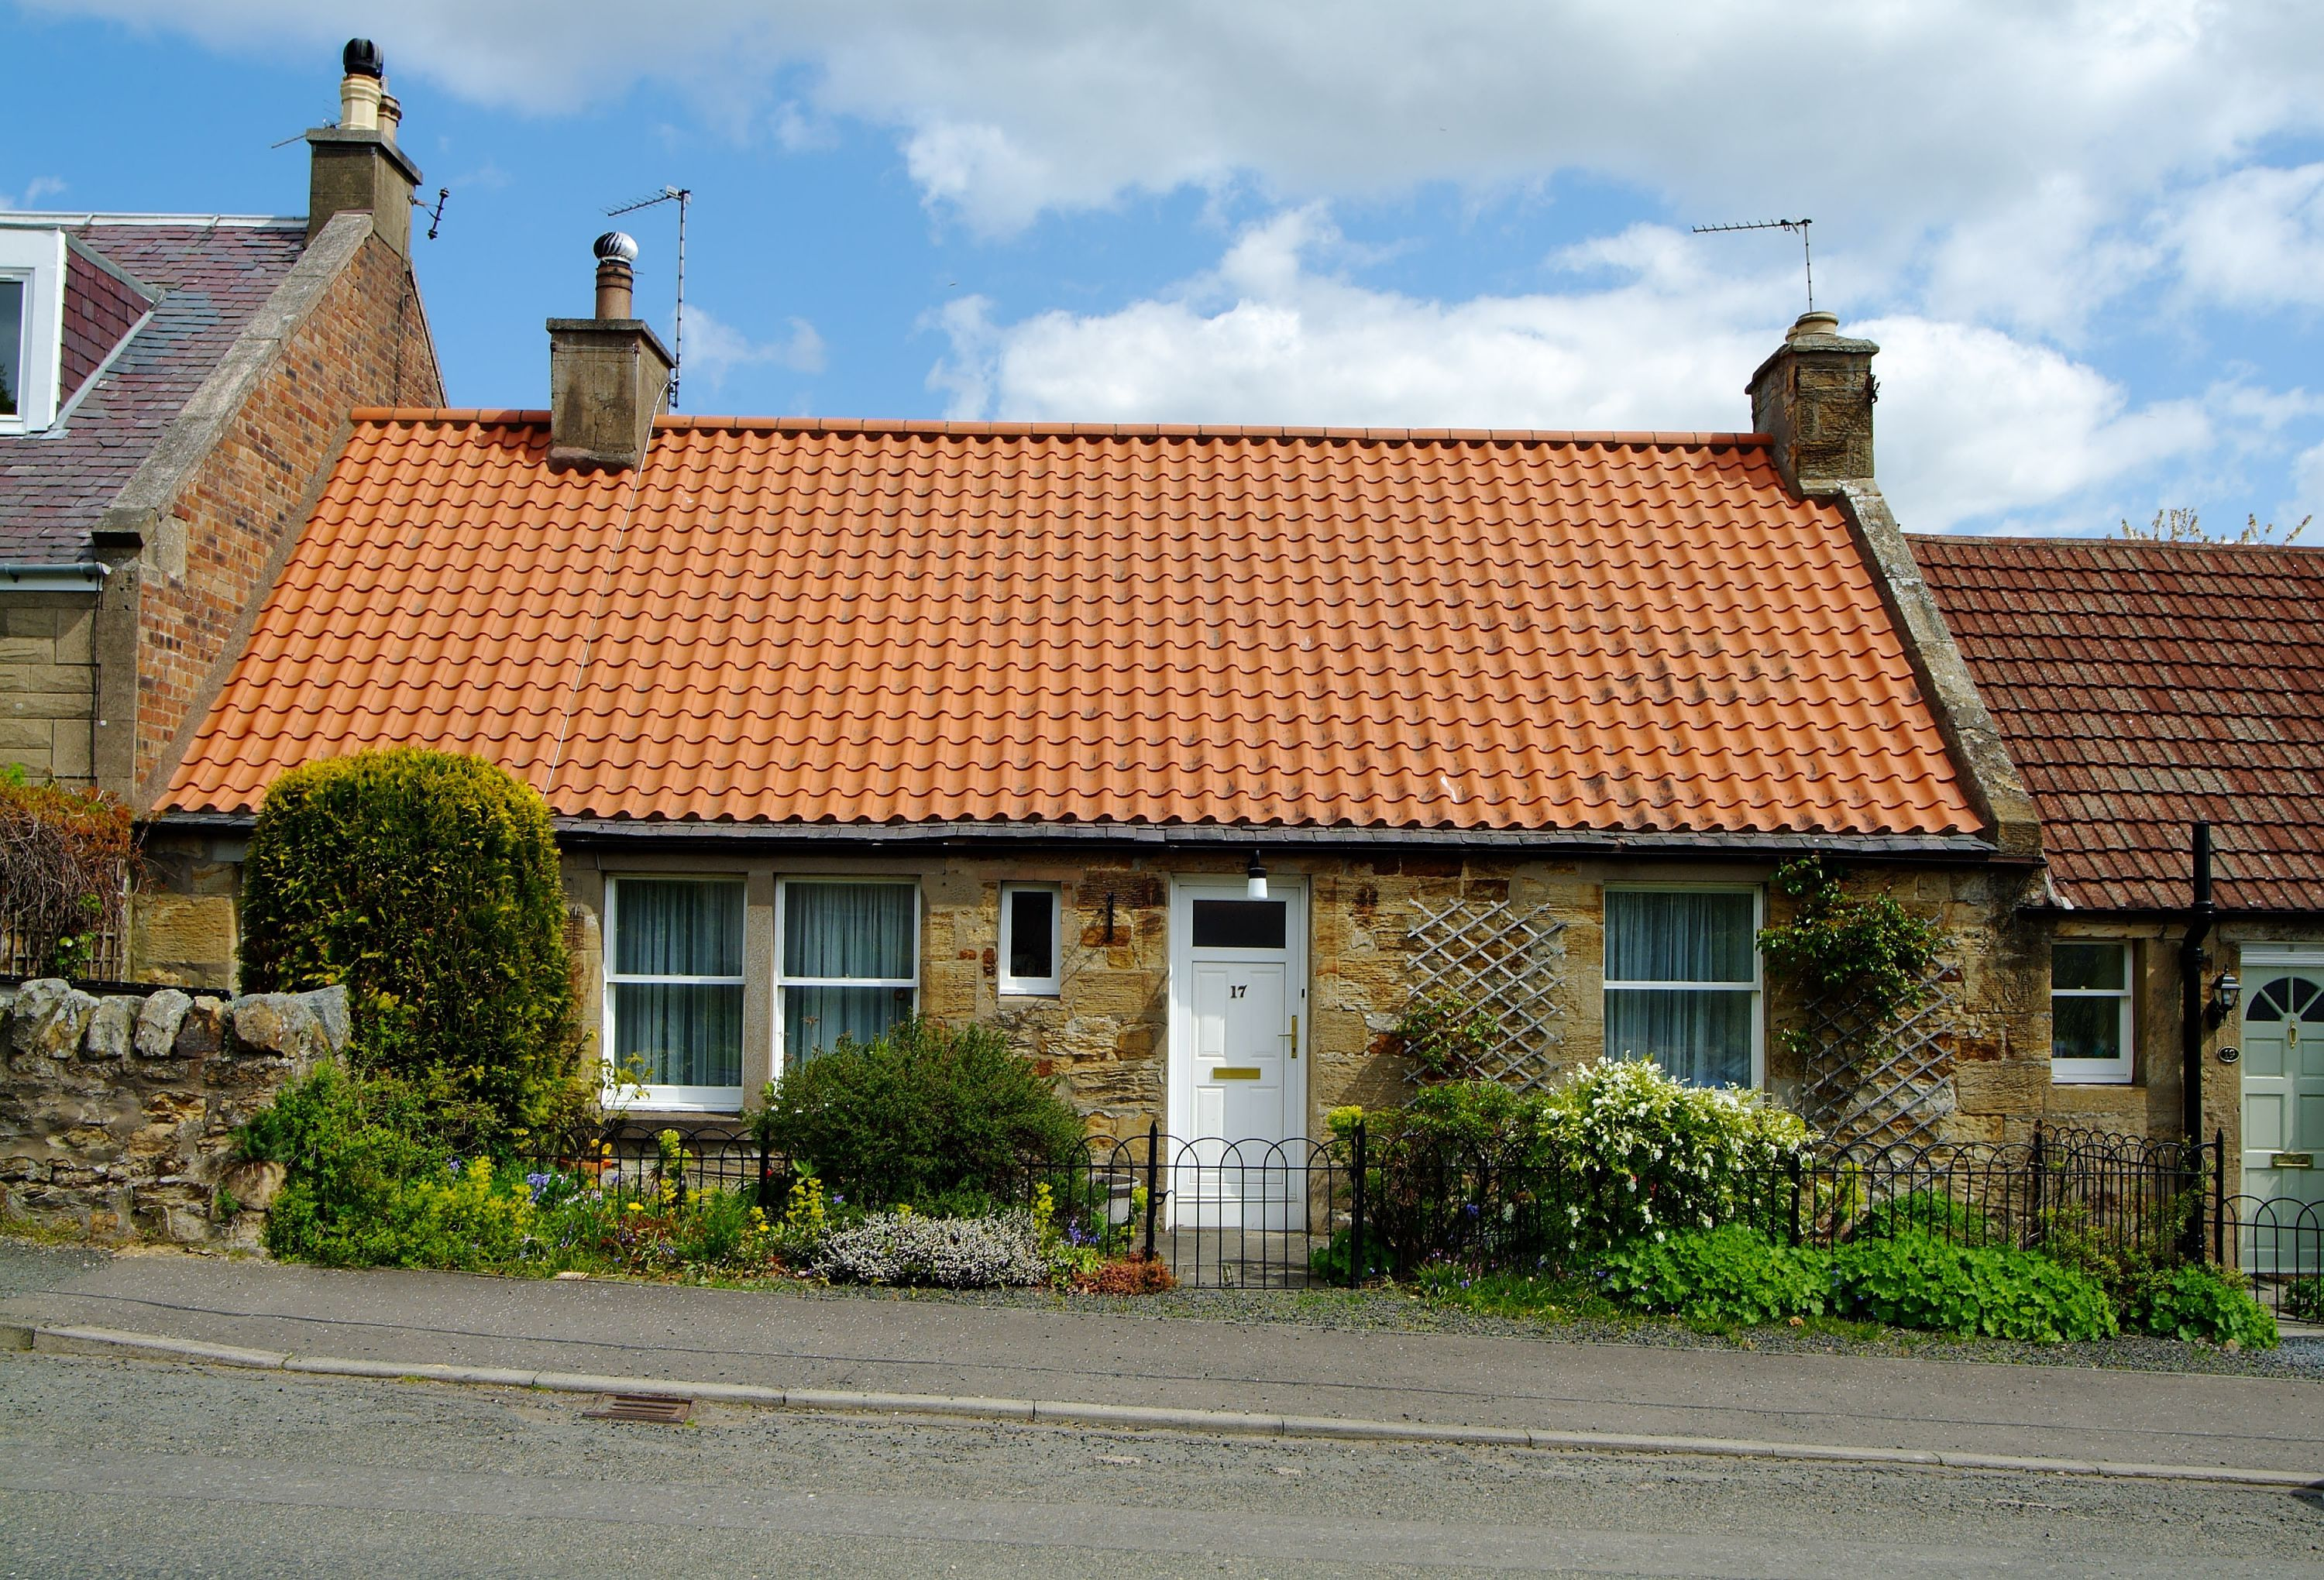 17 Edgehead Road, Edgehead Village, EH37 5RL